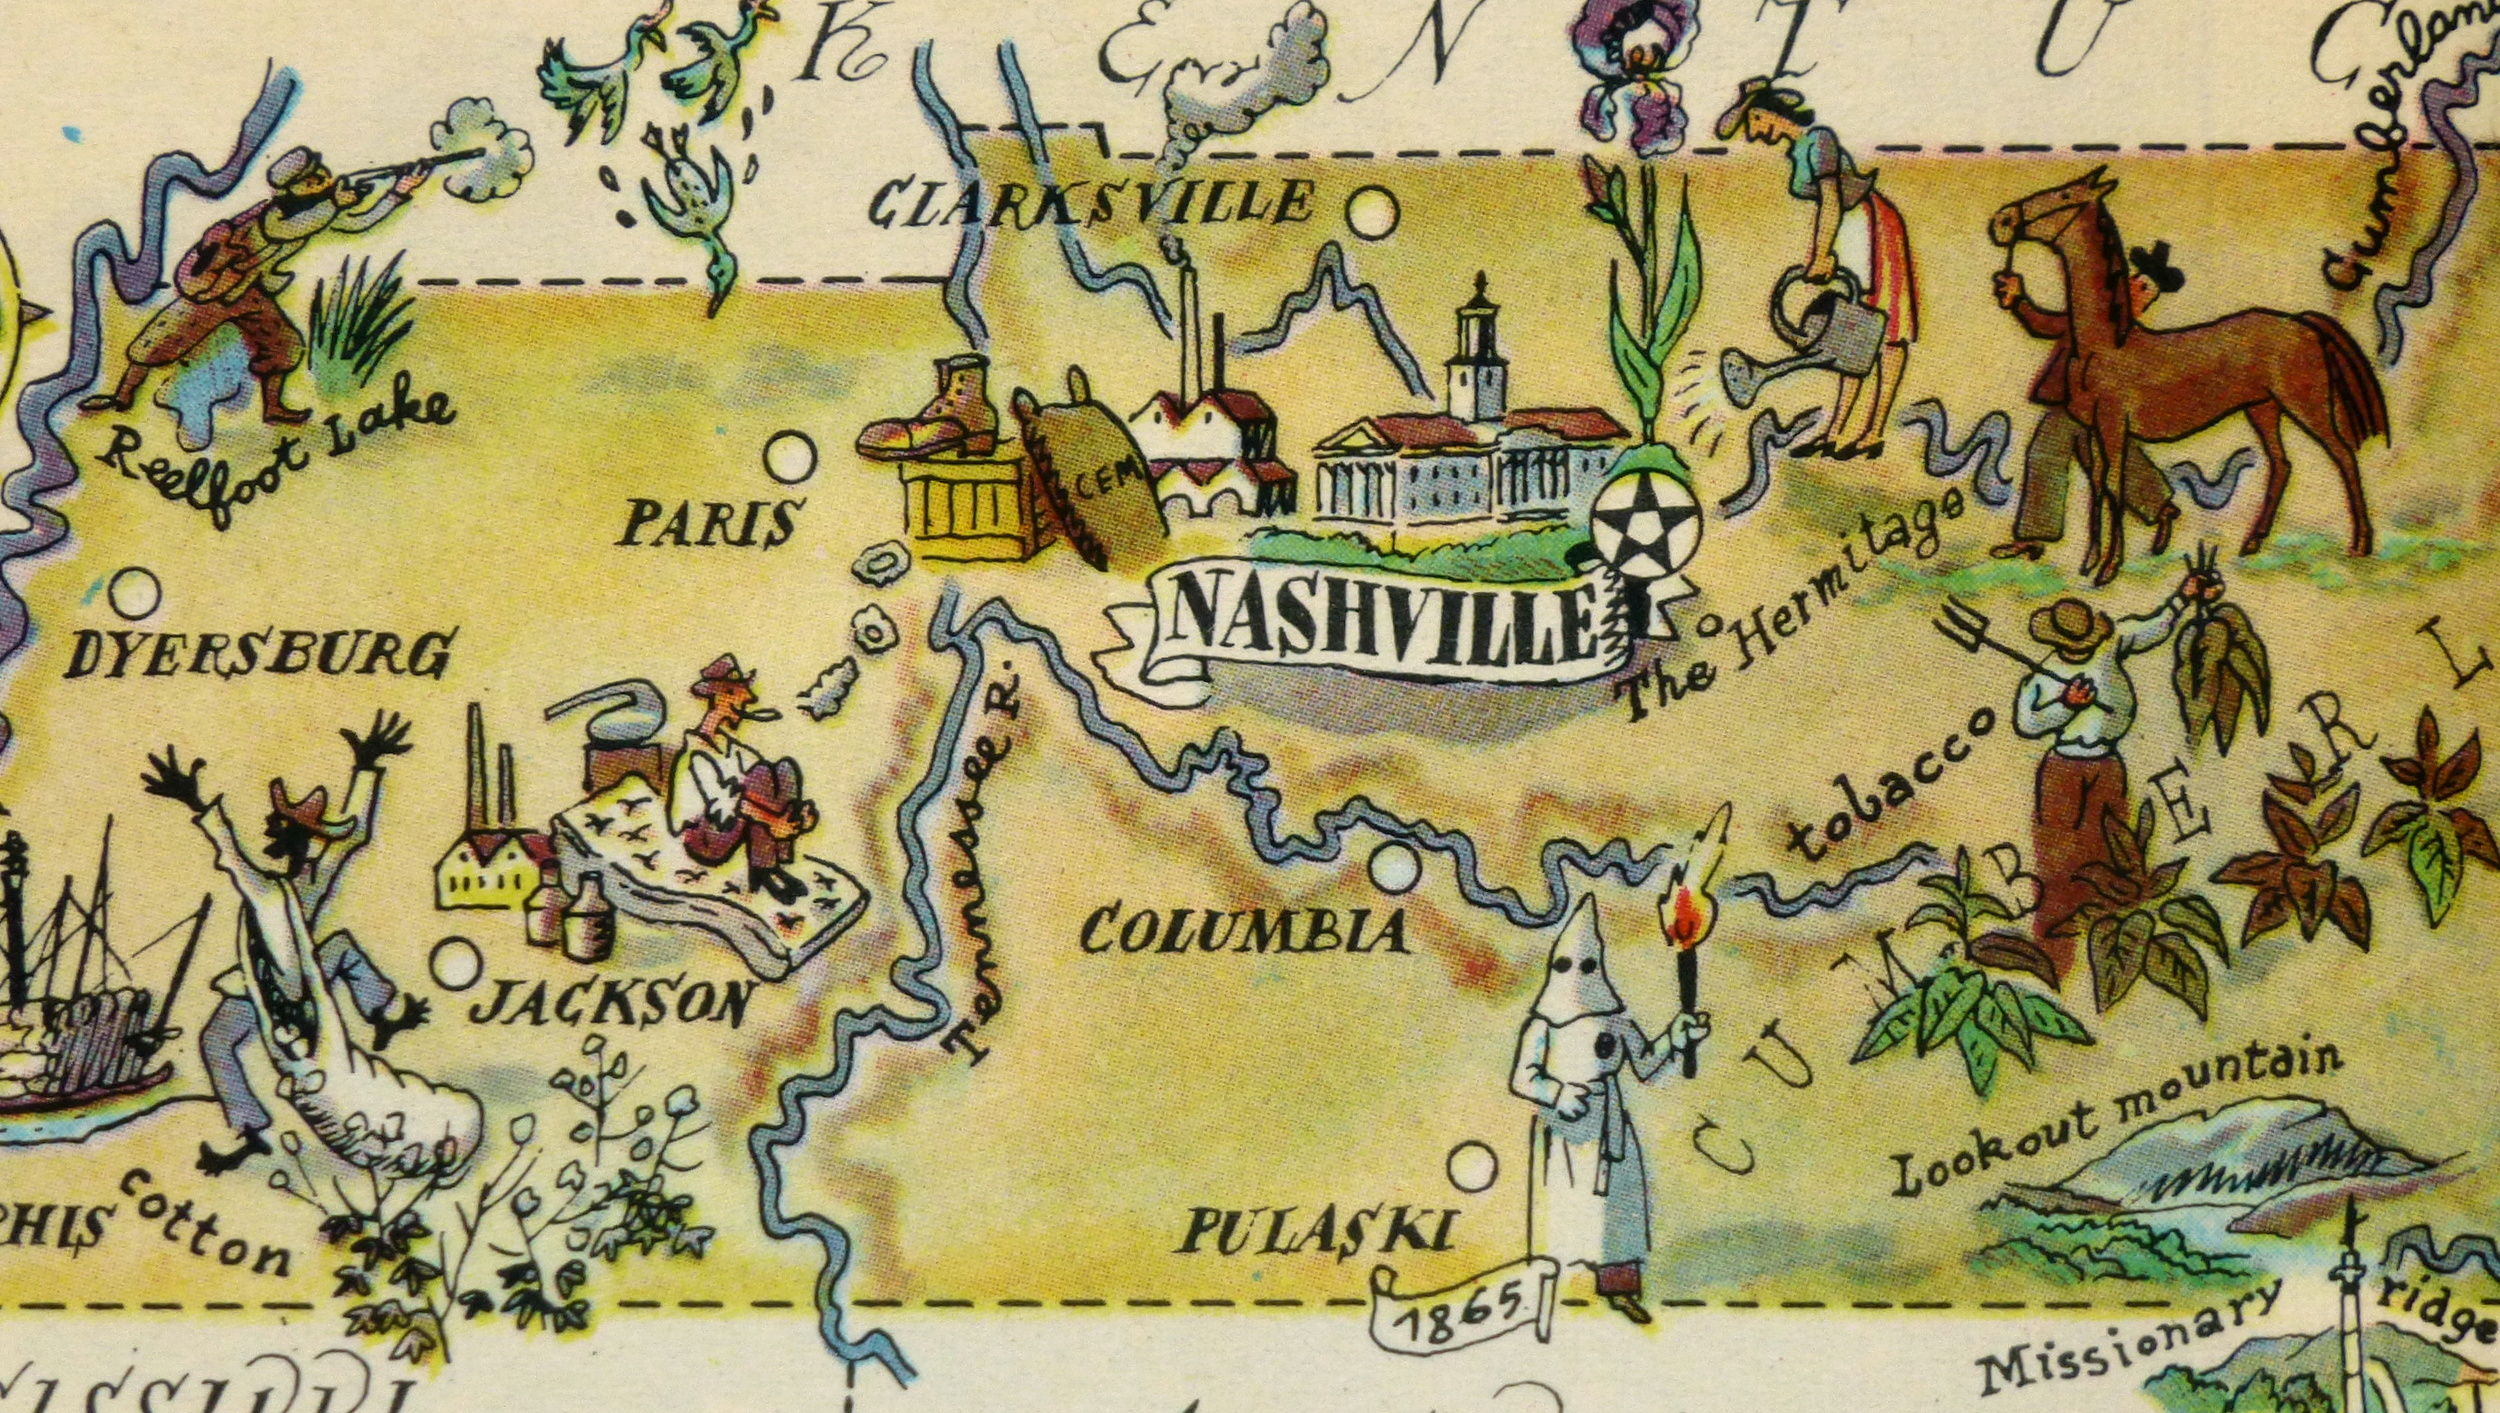 Tennessee Pictorial Map - Map of tennesee